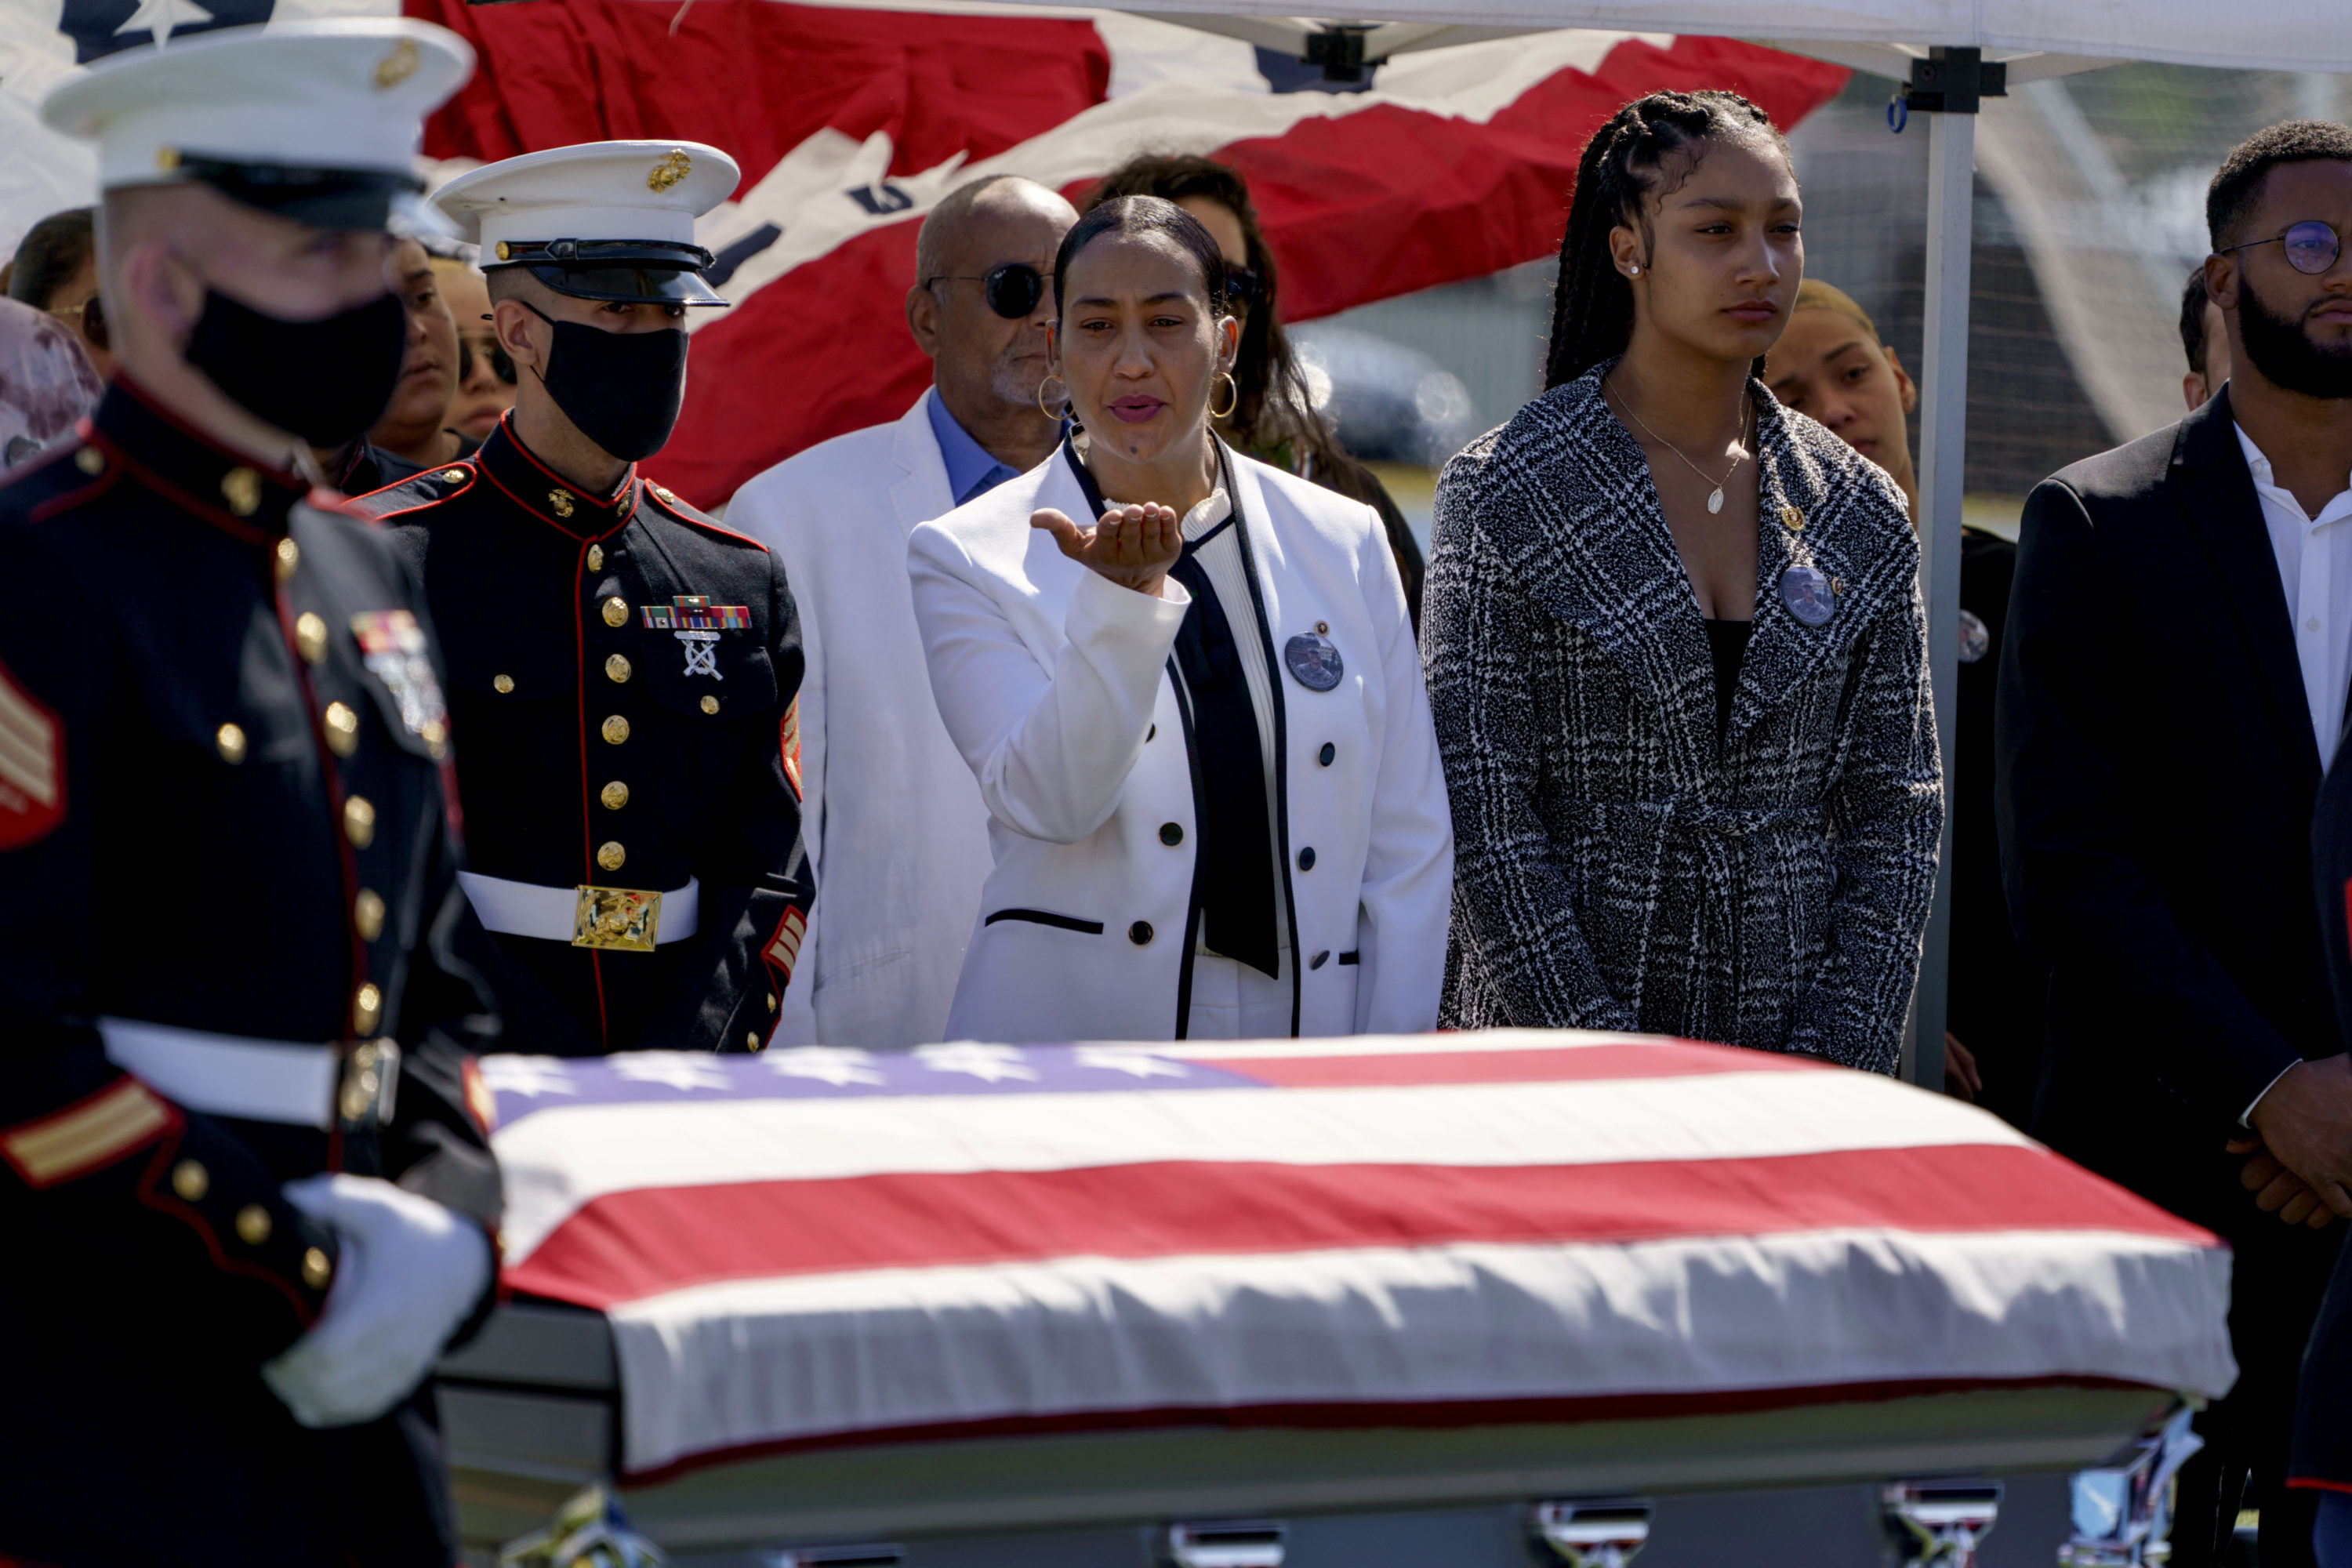 Colasa Pichardo, center, blows a kiss toward the casket of her daughter, Sgt. Johanny Rosario, a U.S. Marine who was among 13 service members killed in a suicide bombing in Afghanistan, during a public wake in her hometown of Lawrence on Tuesday. (David Goldman/AP)